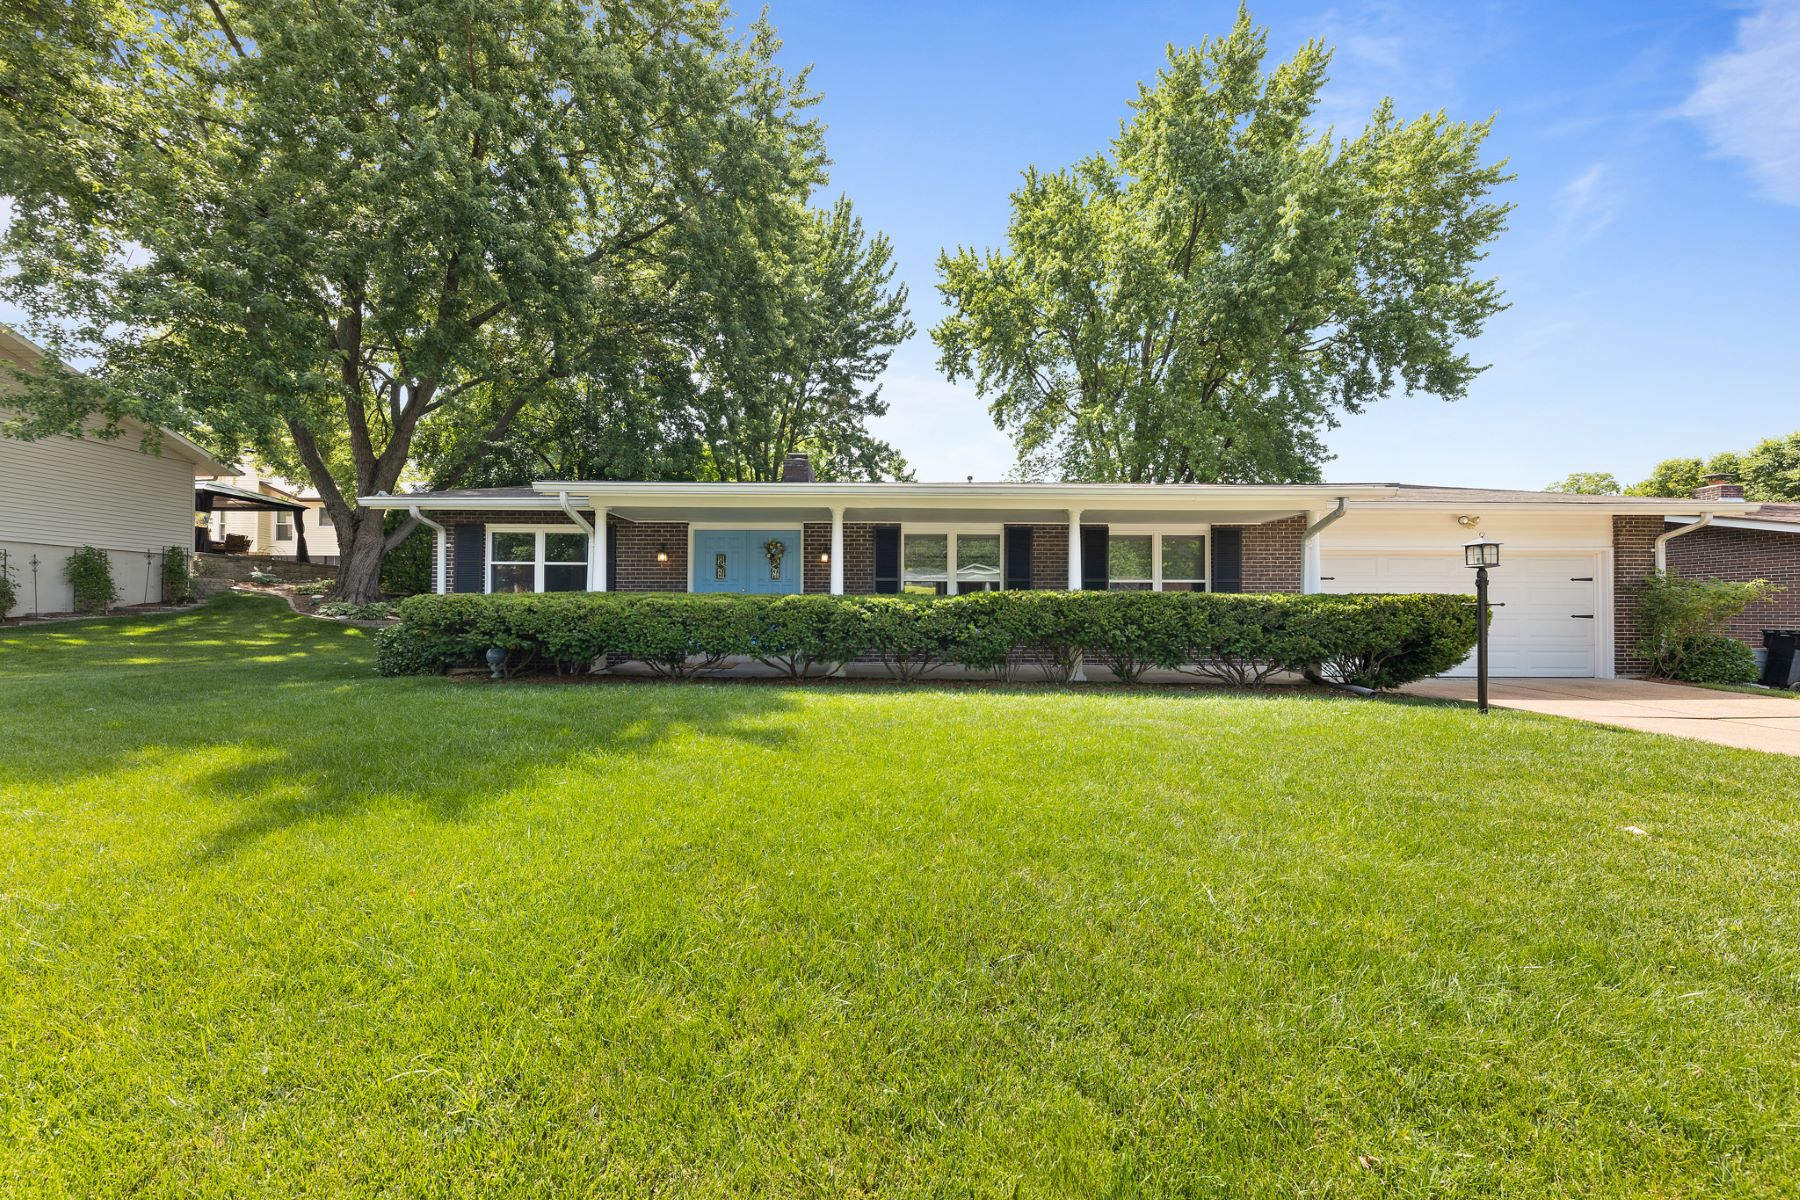 Single Family Homes for Sale at Updated Open Floor Plan 11574 Patty Ann Drive St. Louis, Missouri 63146 United States